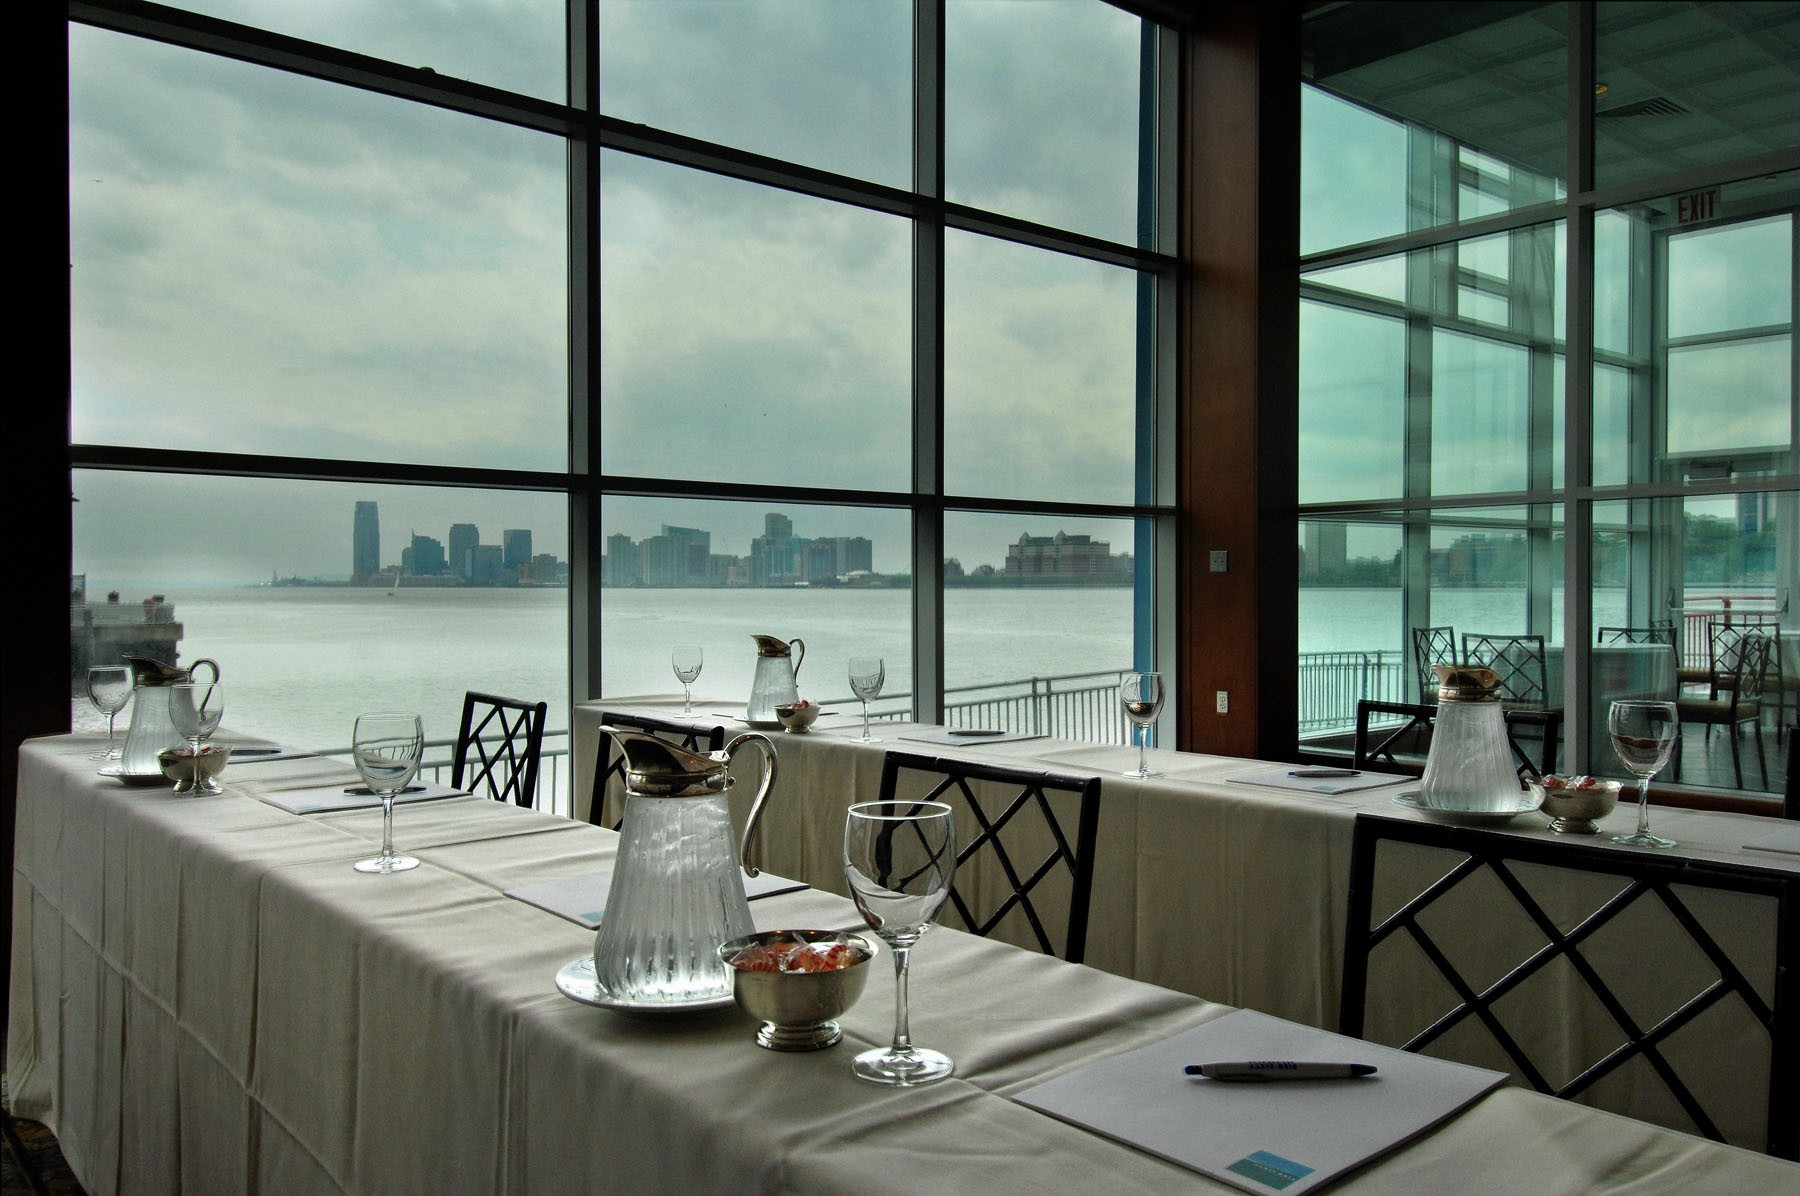 Pier Sixty in a classroom set up, note pads, pens, water service on the tables with water views in the background